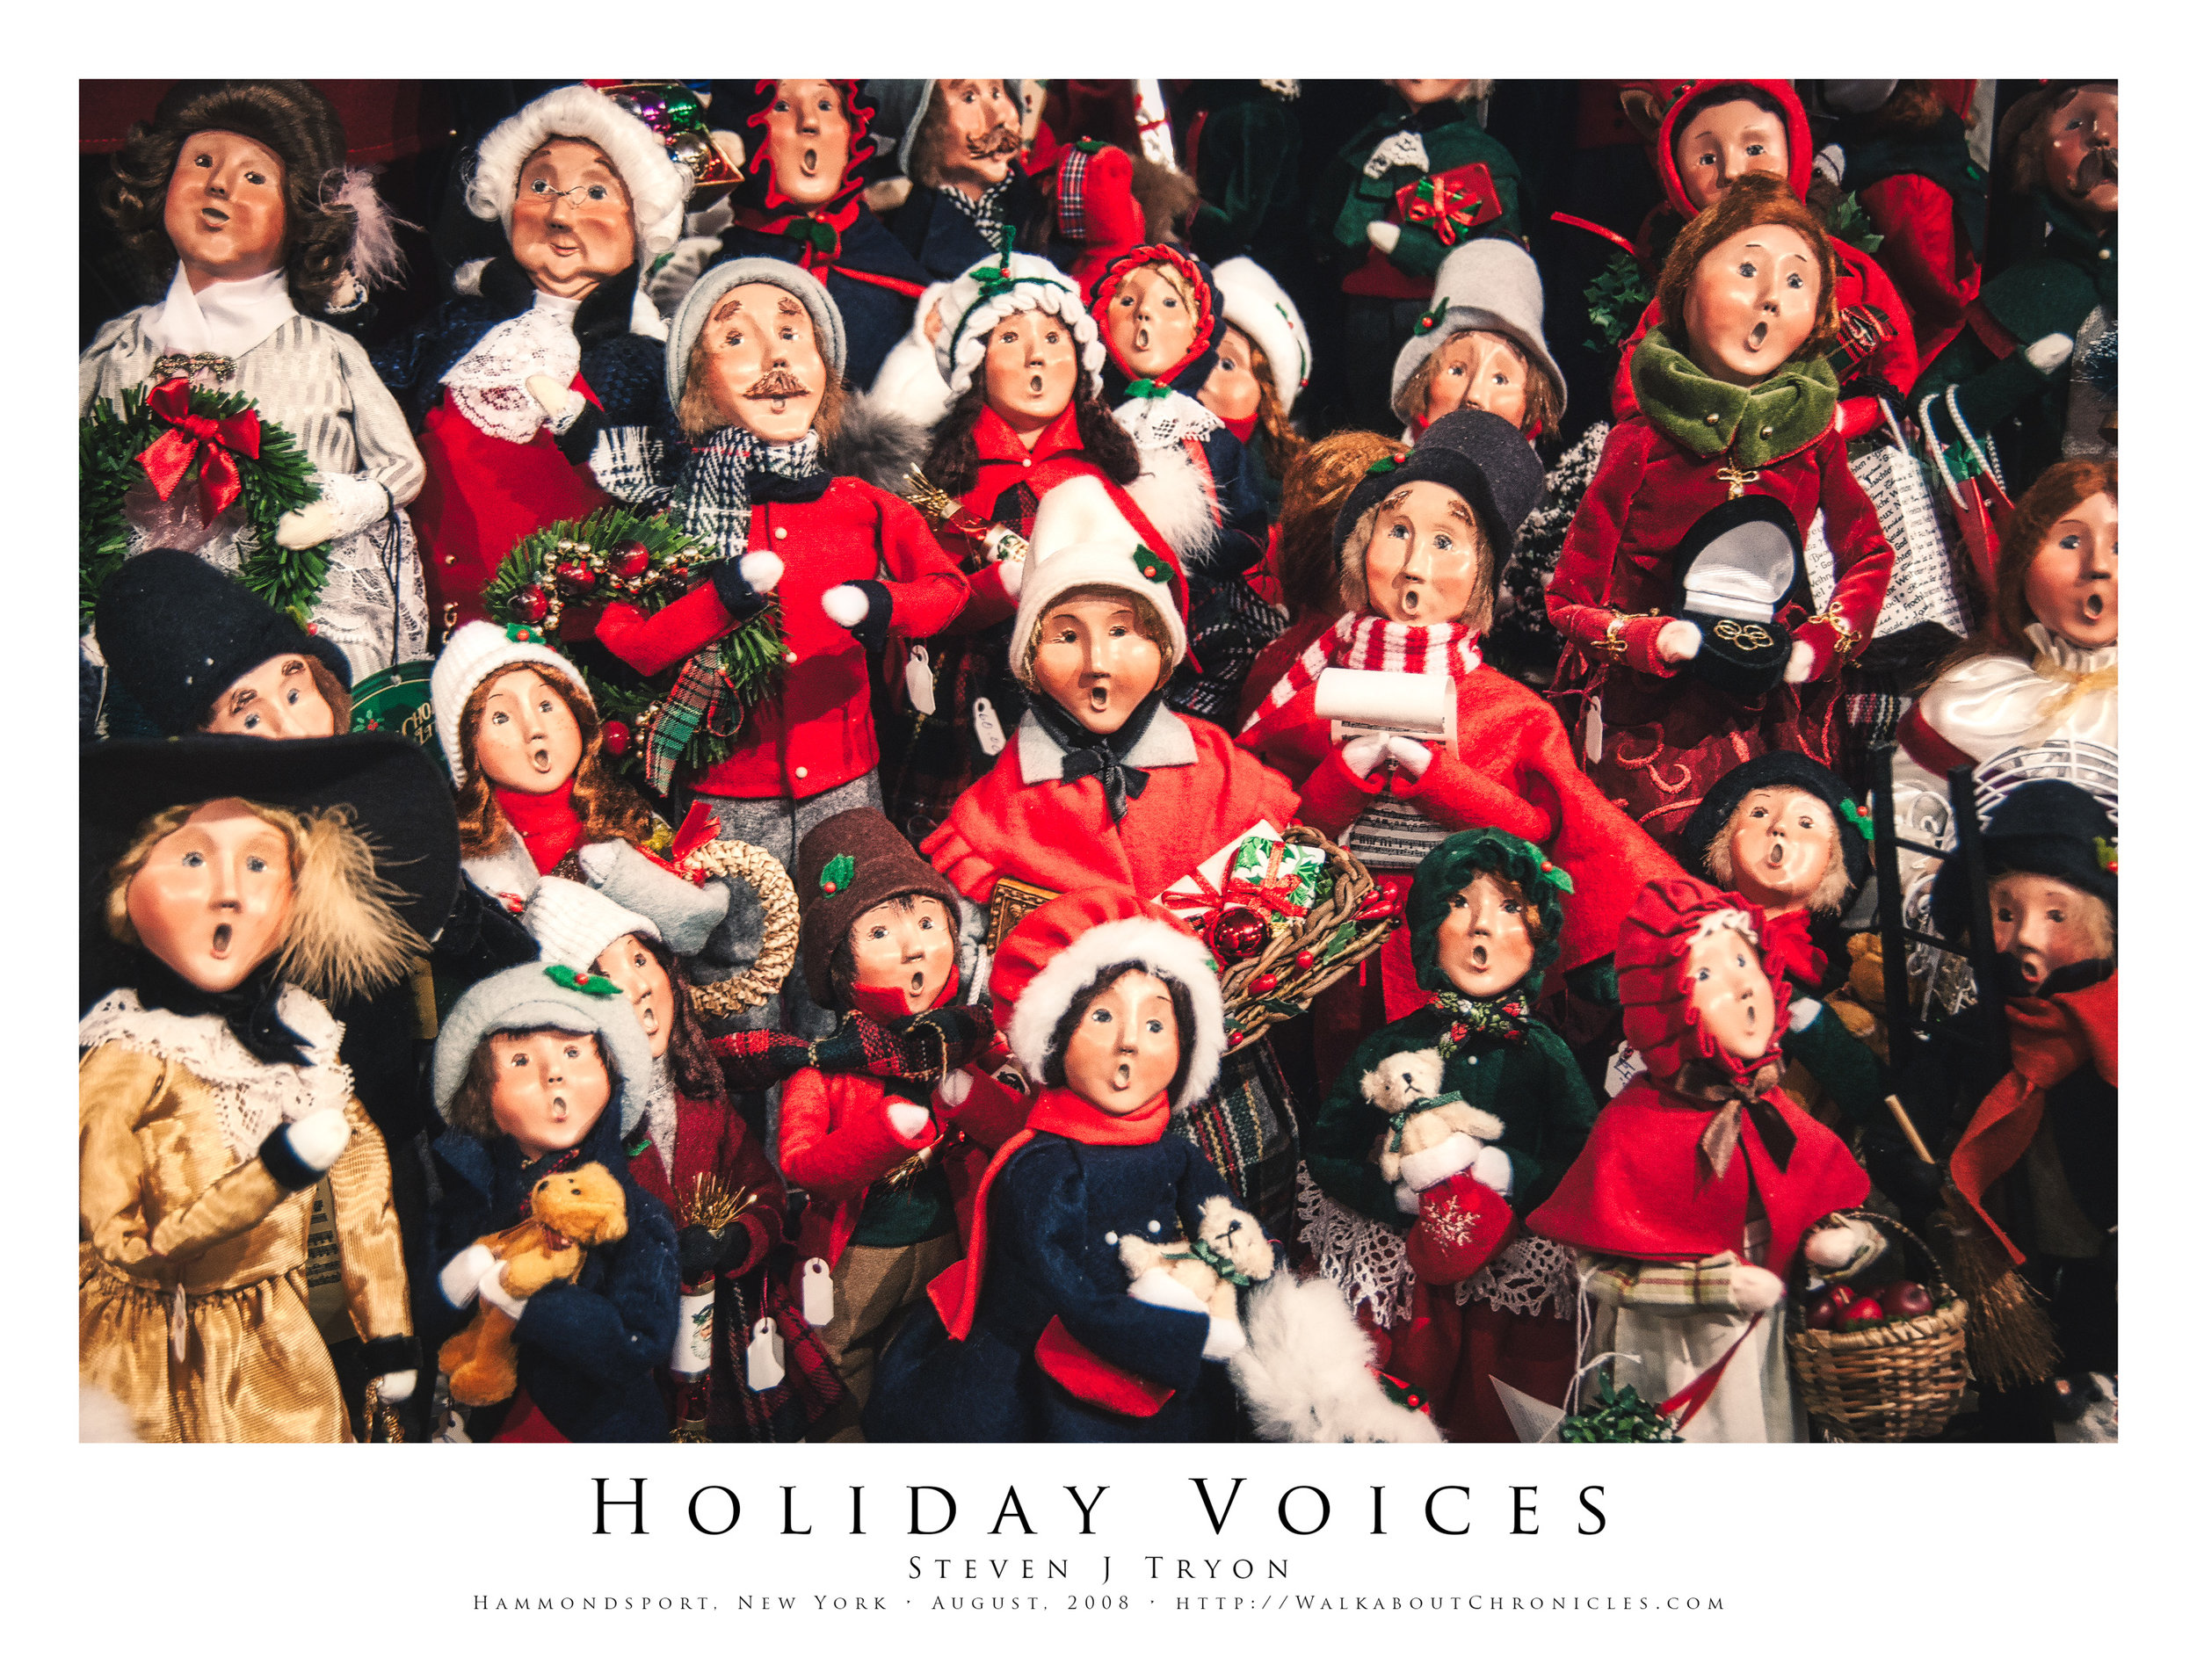 Holiday Voices